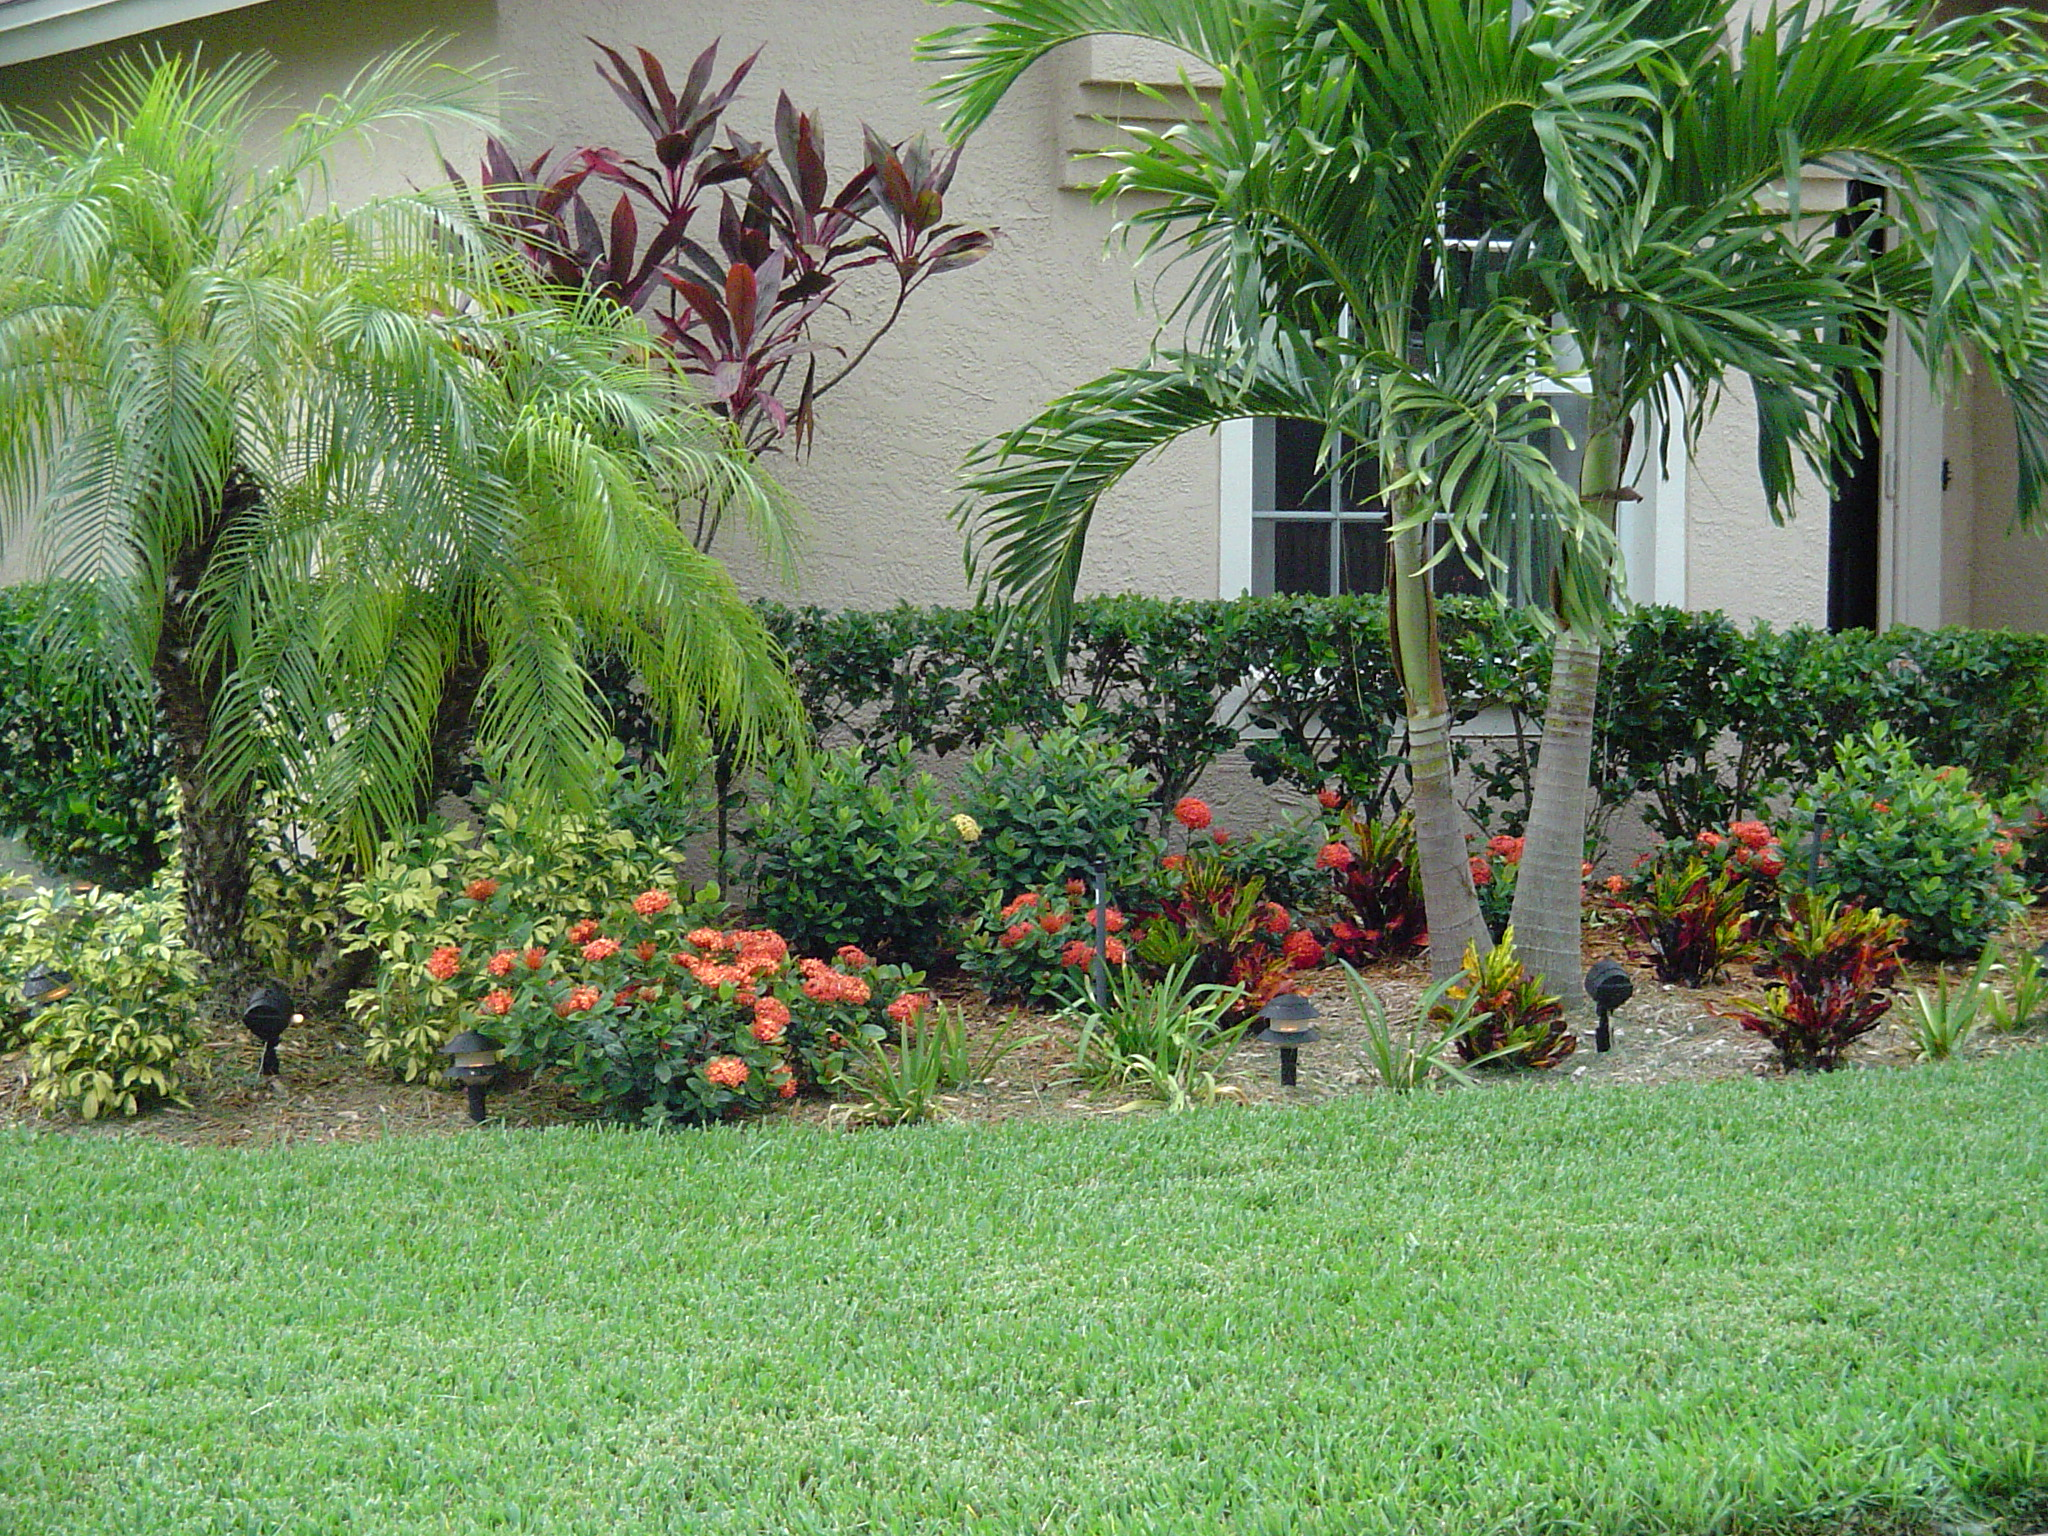 Kasa Landscaping: pictures of landscaping ideas